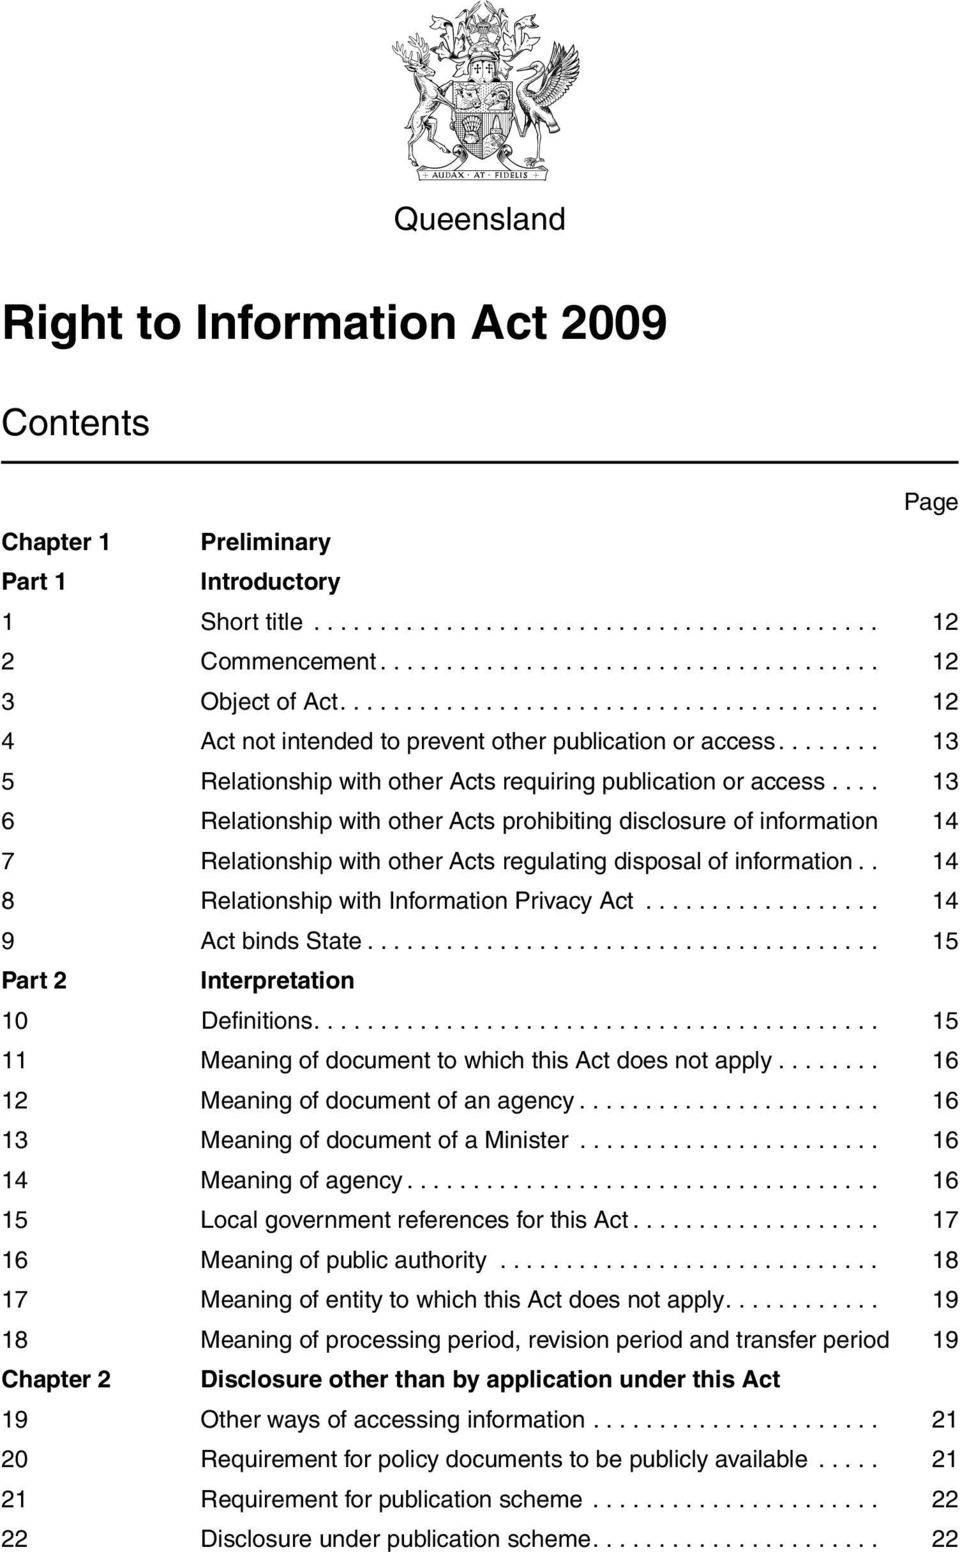 ... 13 6 Relationship with other Acts prohibiting disclosure of information 14 7 Relationship with other Acts regulating disposal of information.. 14 8 Relationship with Information Privacy Act.